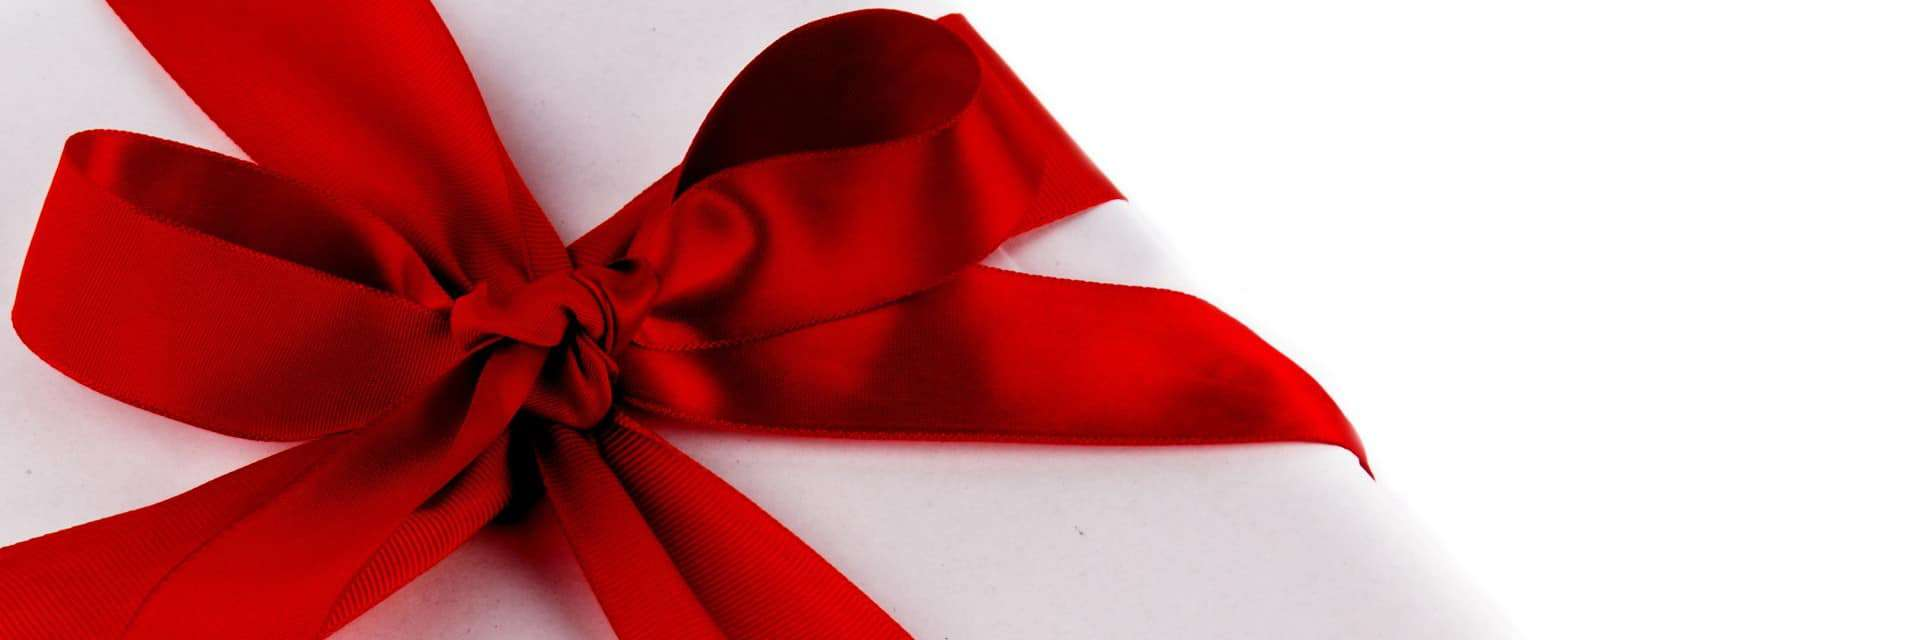 Photo of a red bow on a white gift box